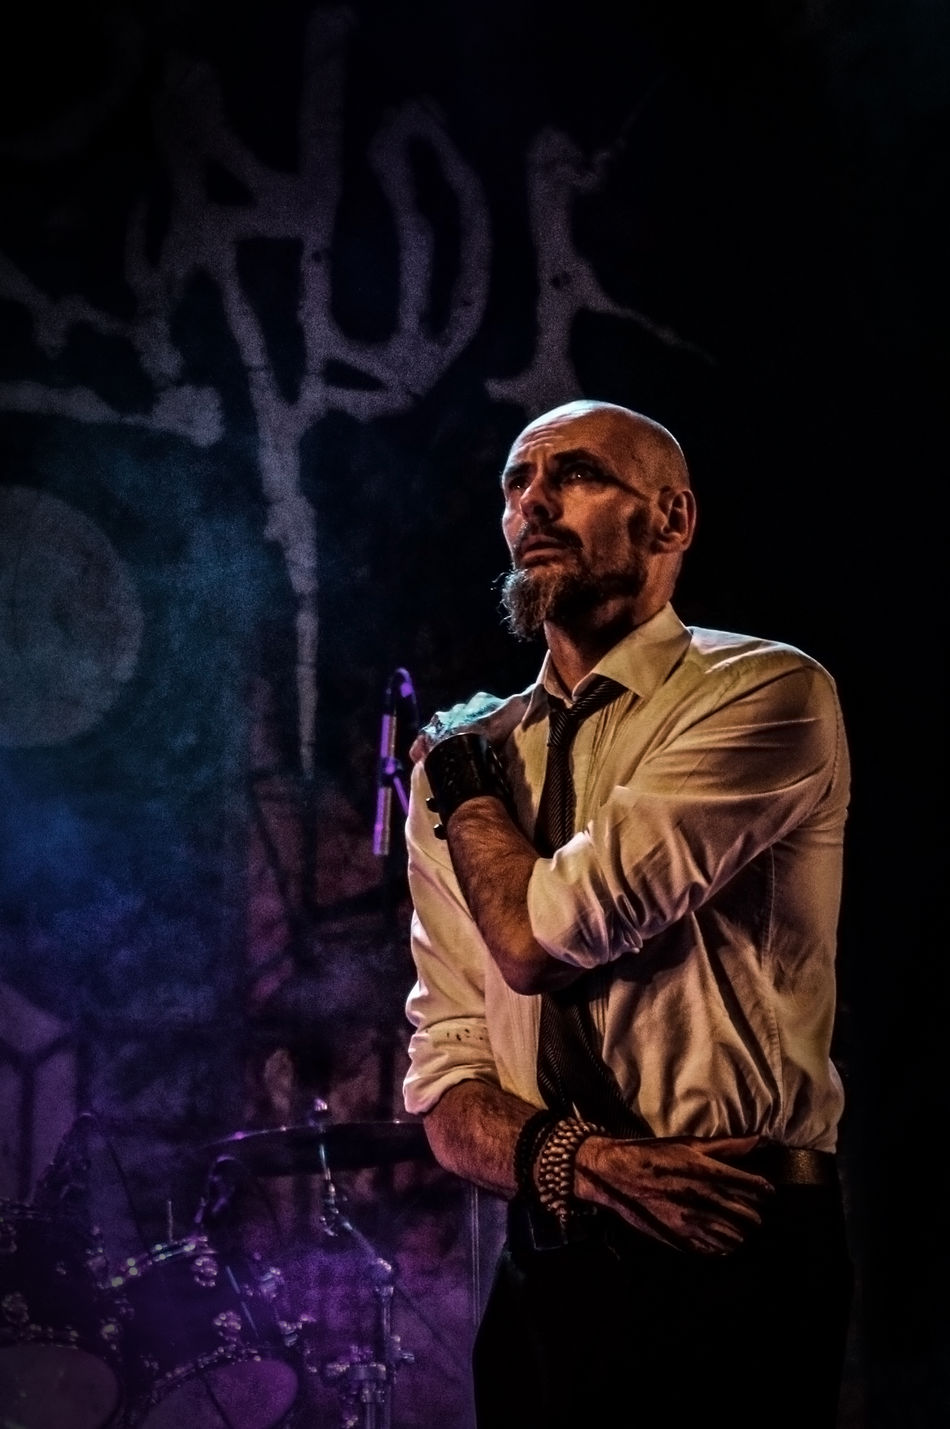 Aaronstainthorpe Artist Concert Photography Doom Metal Emotional Expressive Hands Man My Dying Bride .... Time To Sorrow Person Sweden Rock Festival 2016